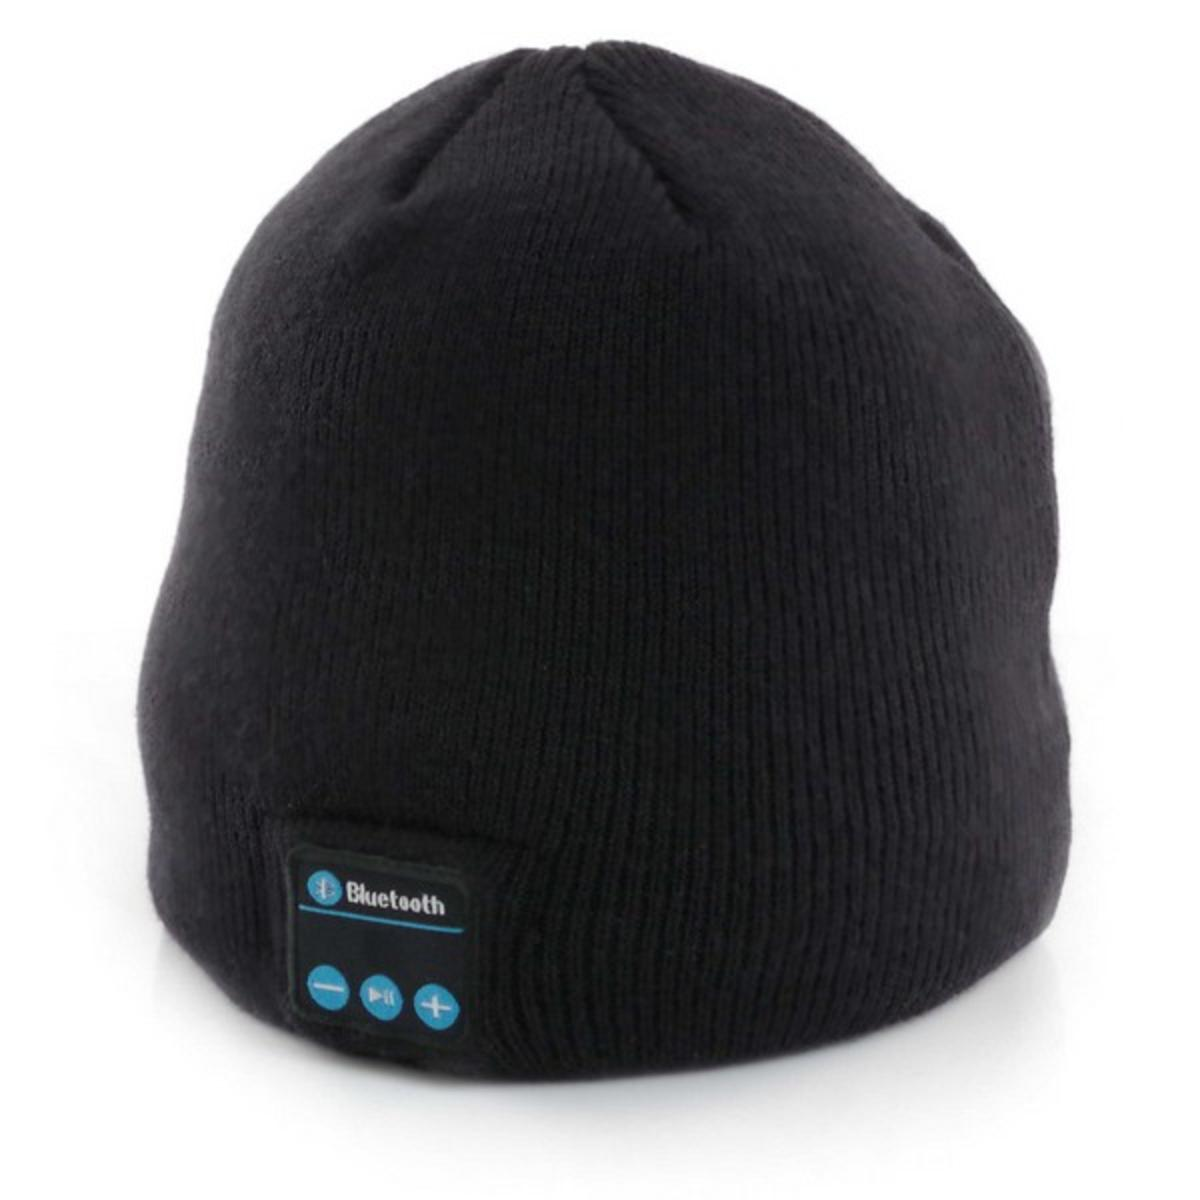 BlueTooth Knit Beanies